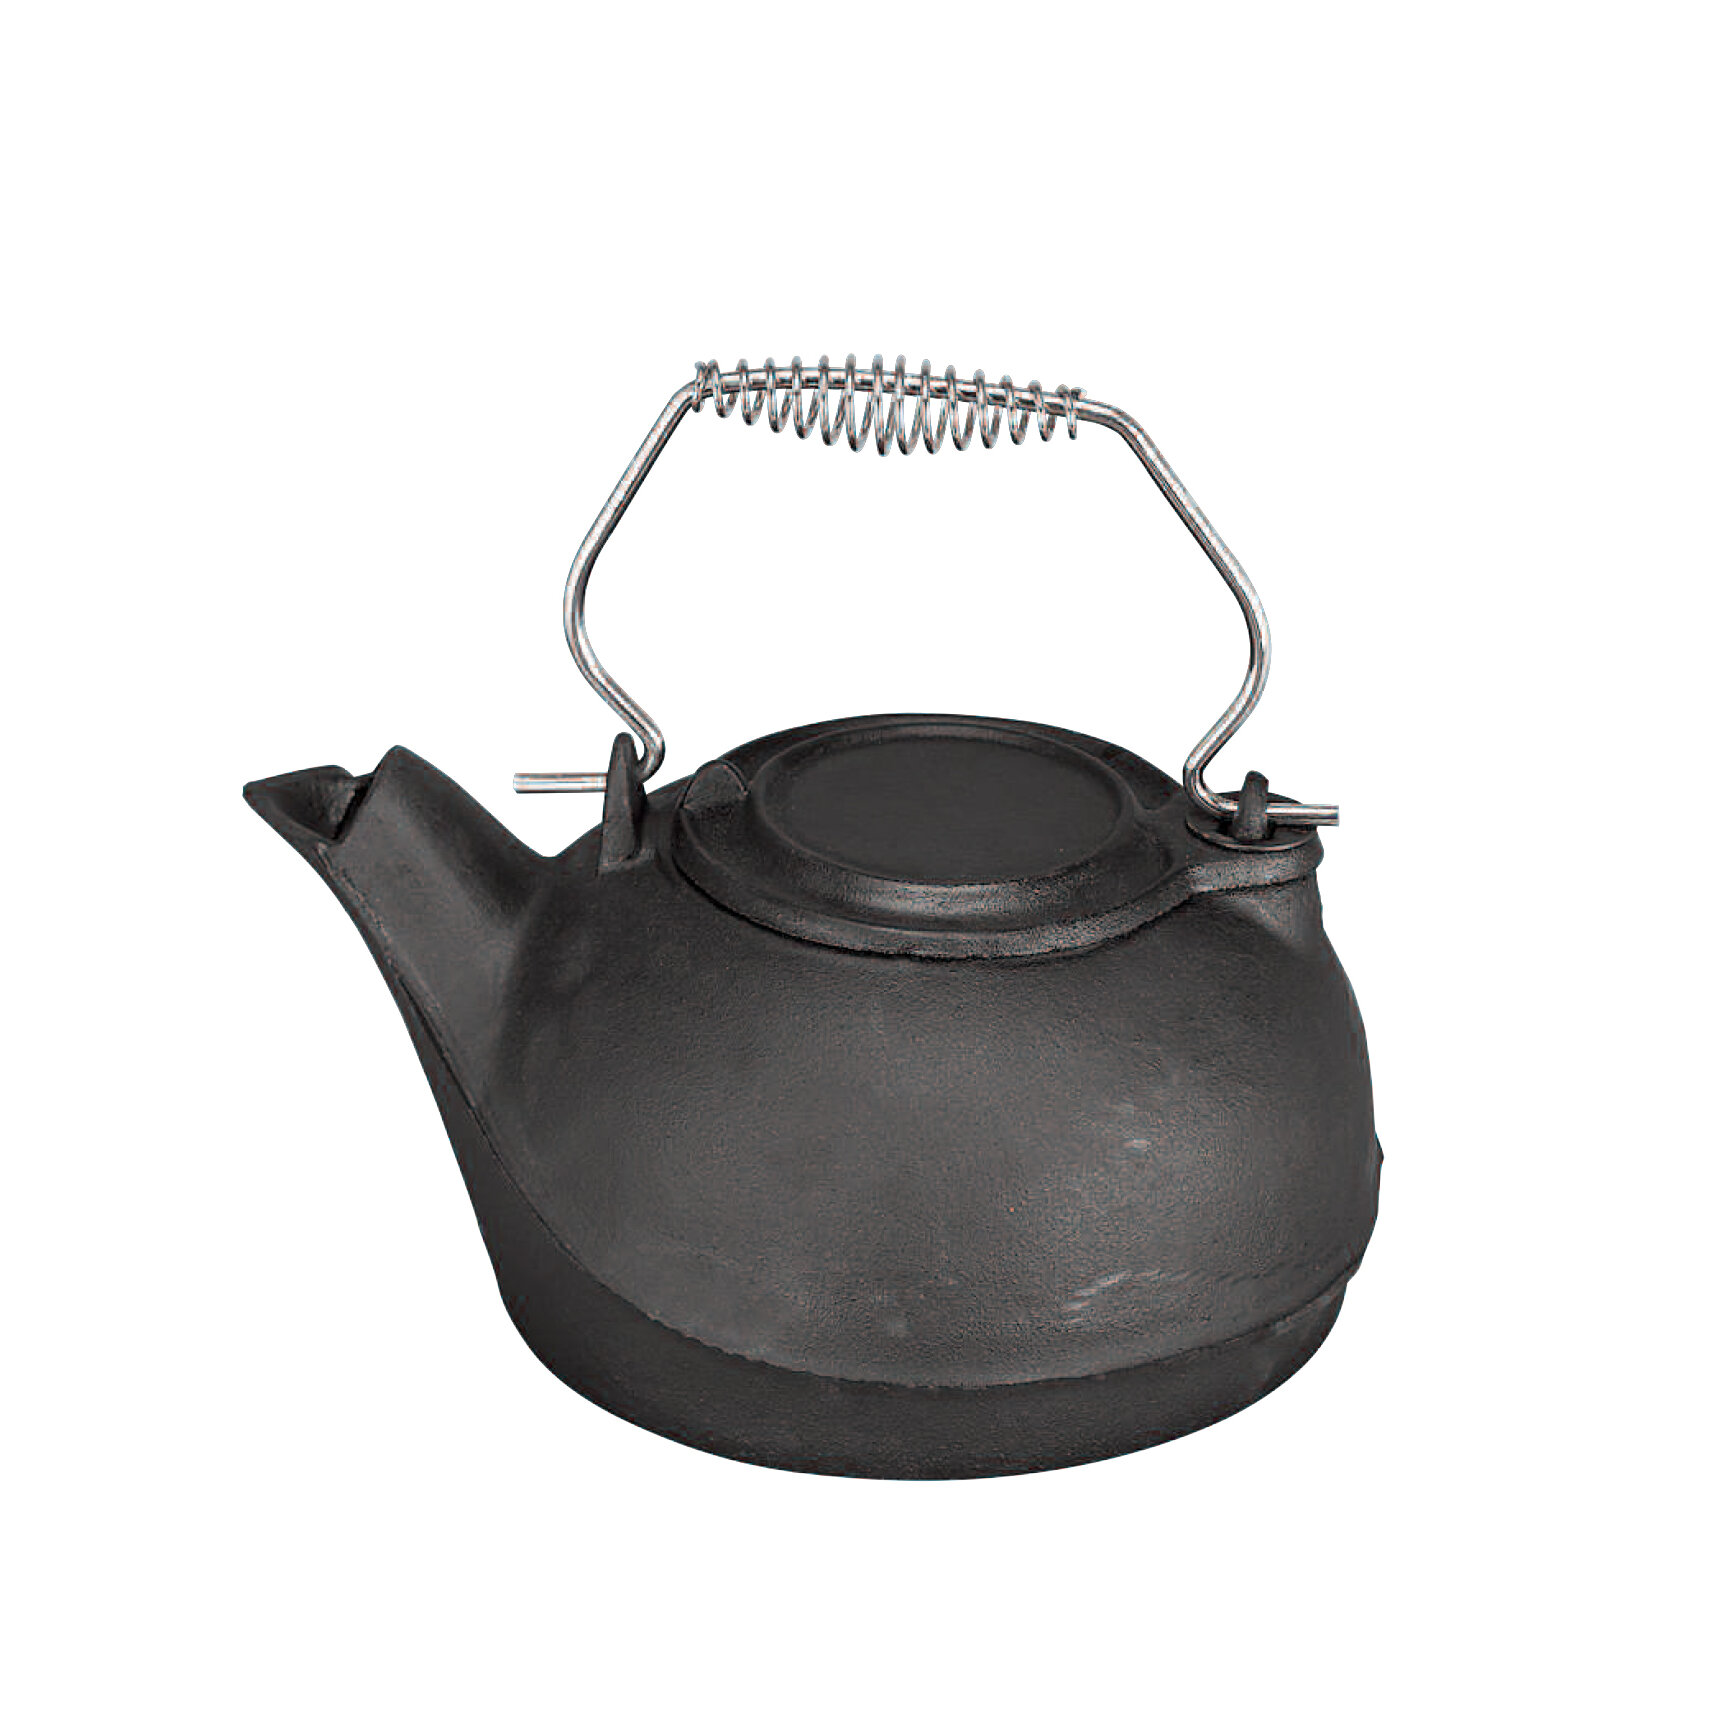 pleasant hearth 3 qt cast iron kettle steamer reviews wayfair